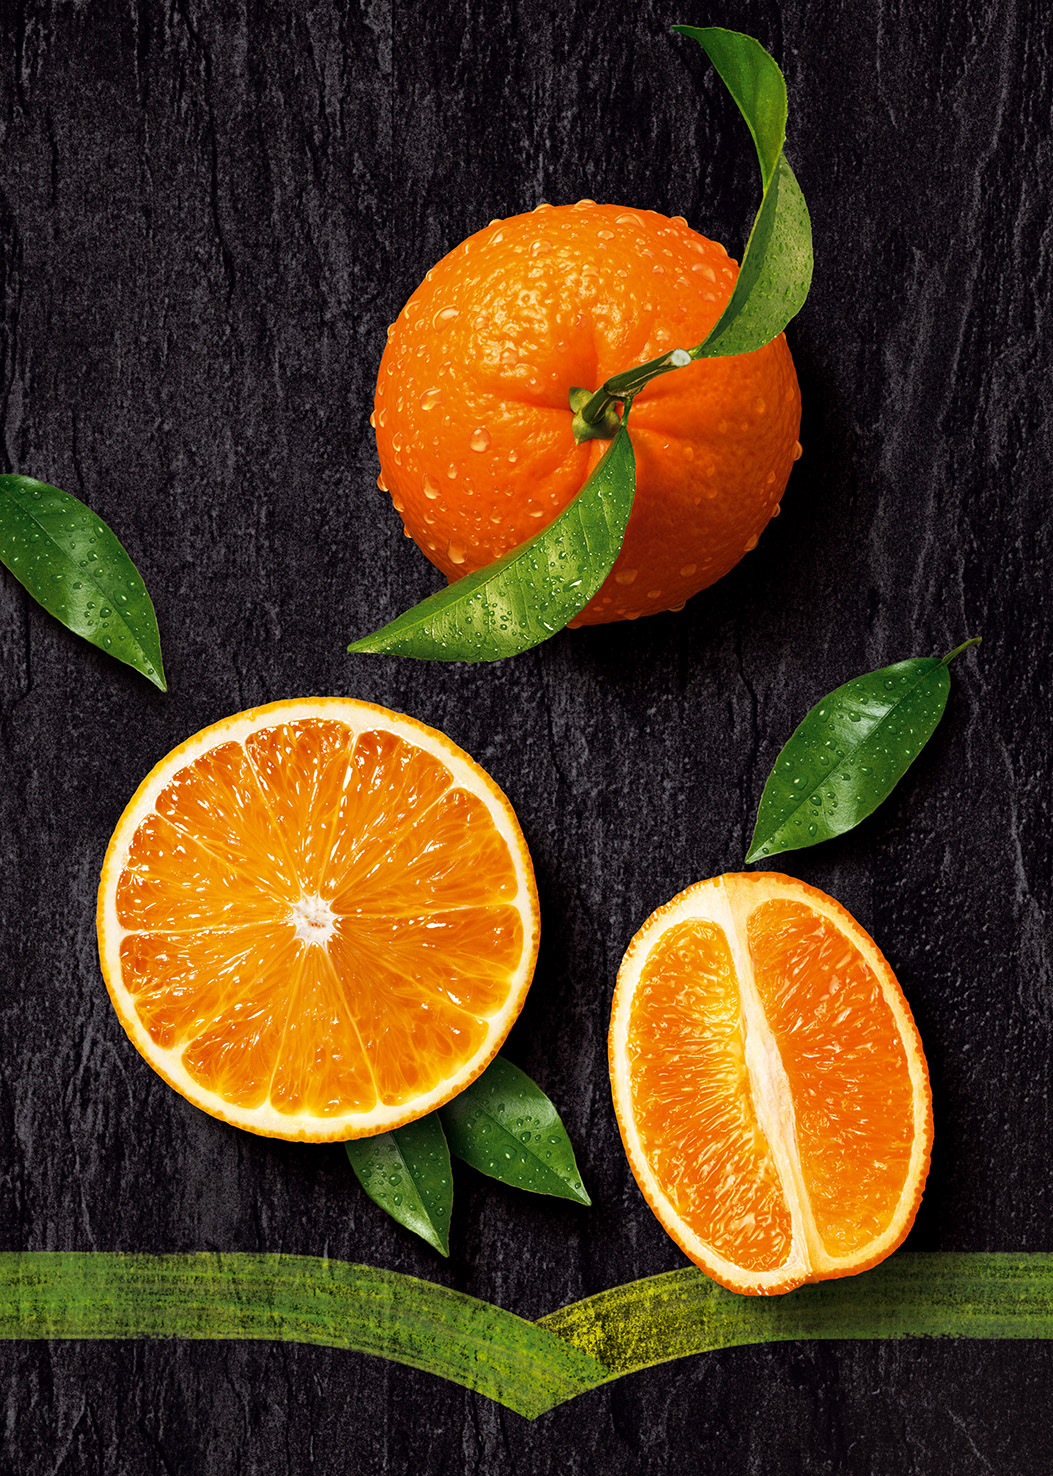 Photo-realistic image of fresh juicy oranges on a slate background used for Minute Maid packaging.